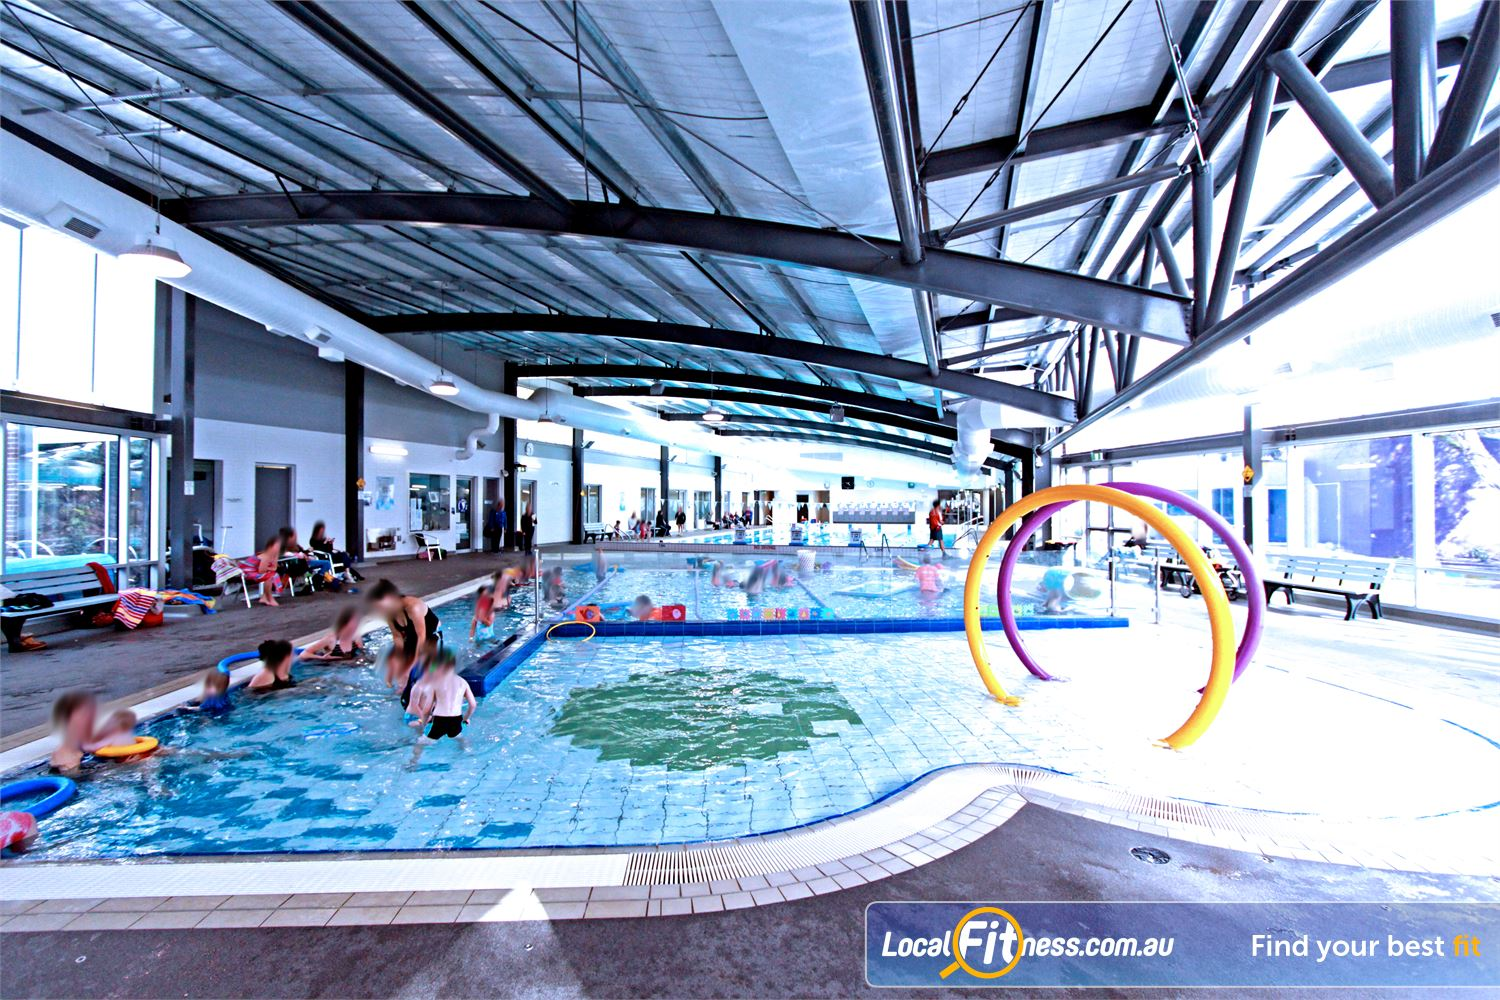 Monbulk Aquatic Centre Monbulk The Monbulk Aquatic facilities are fun for the whole family.